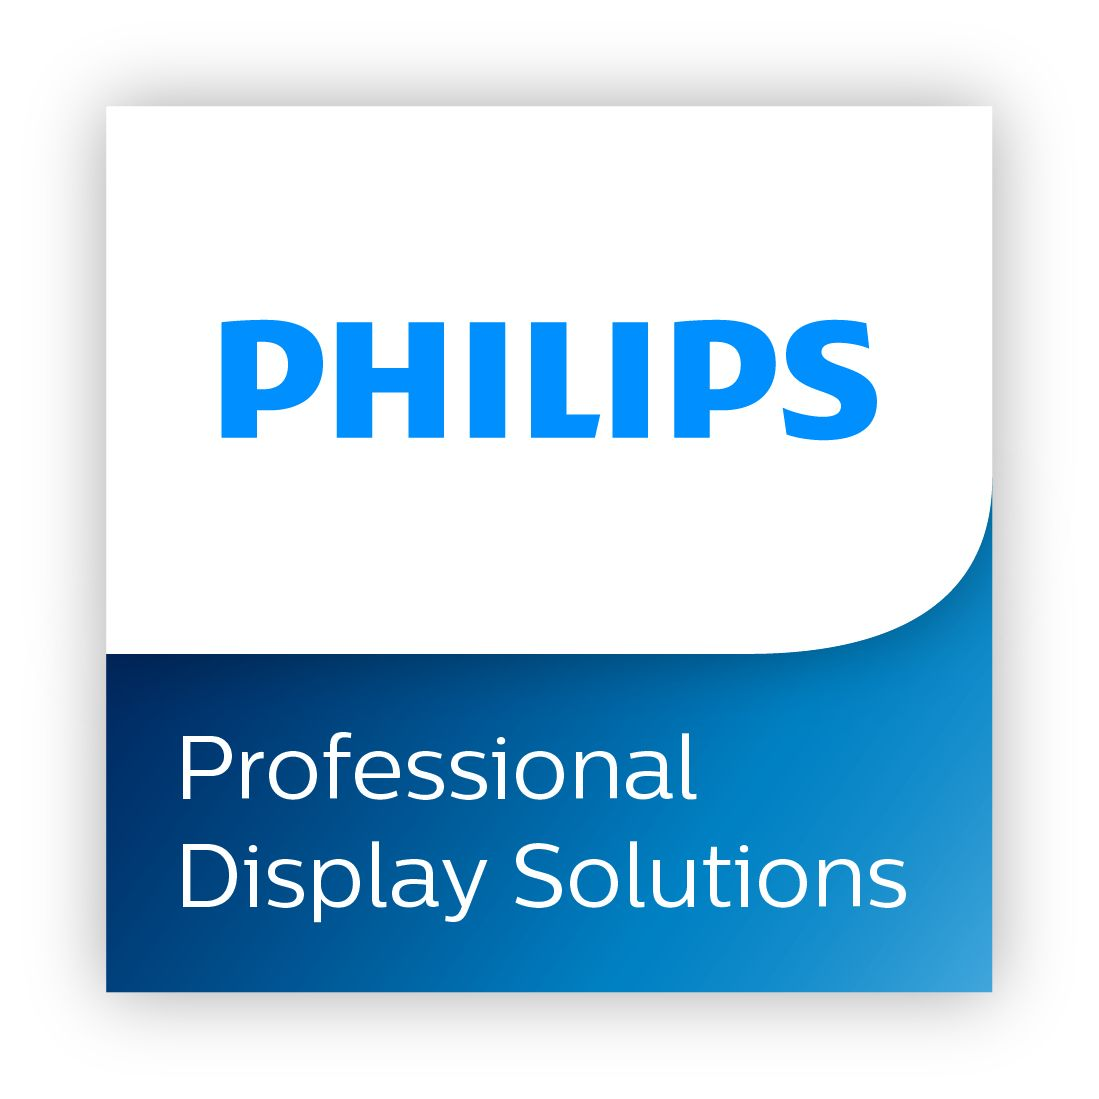 Philips Professional Display Logo